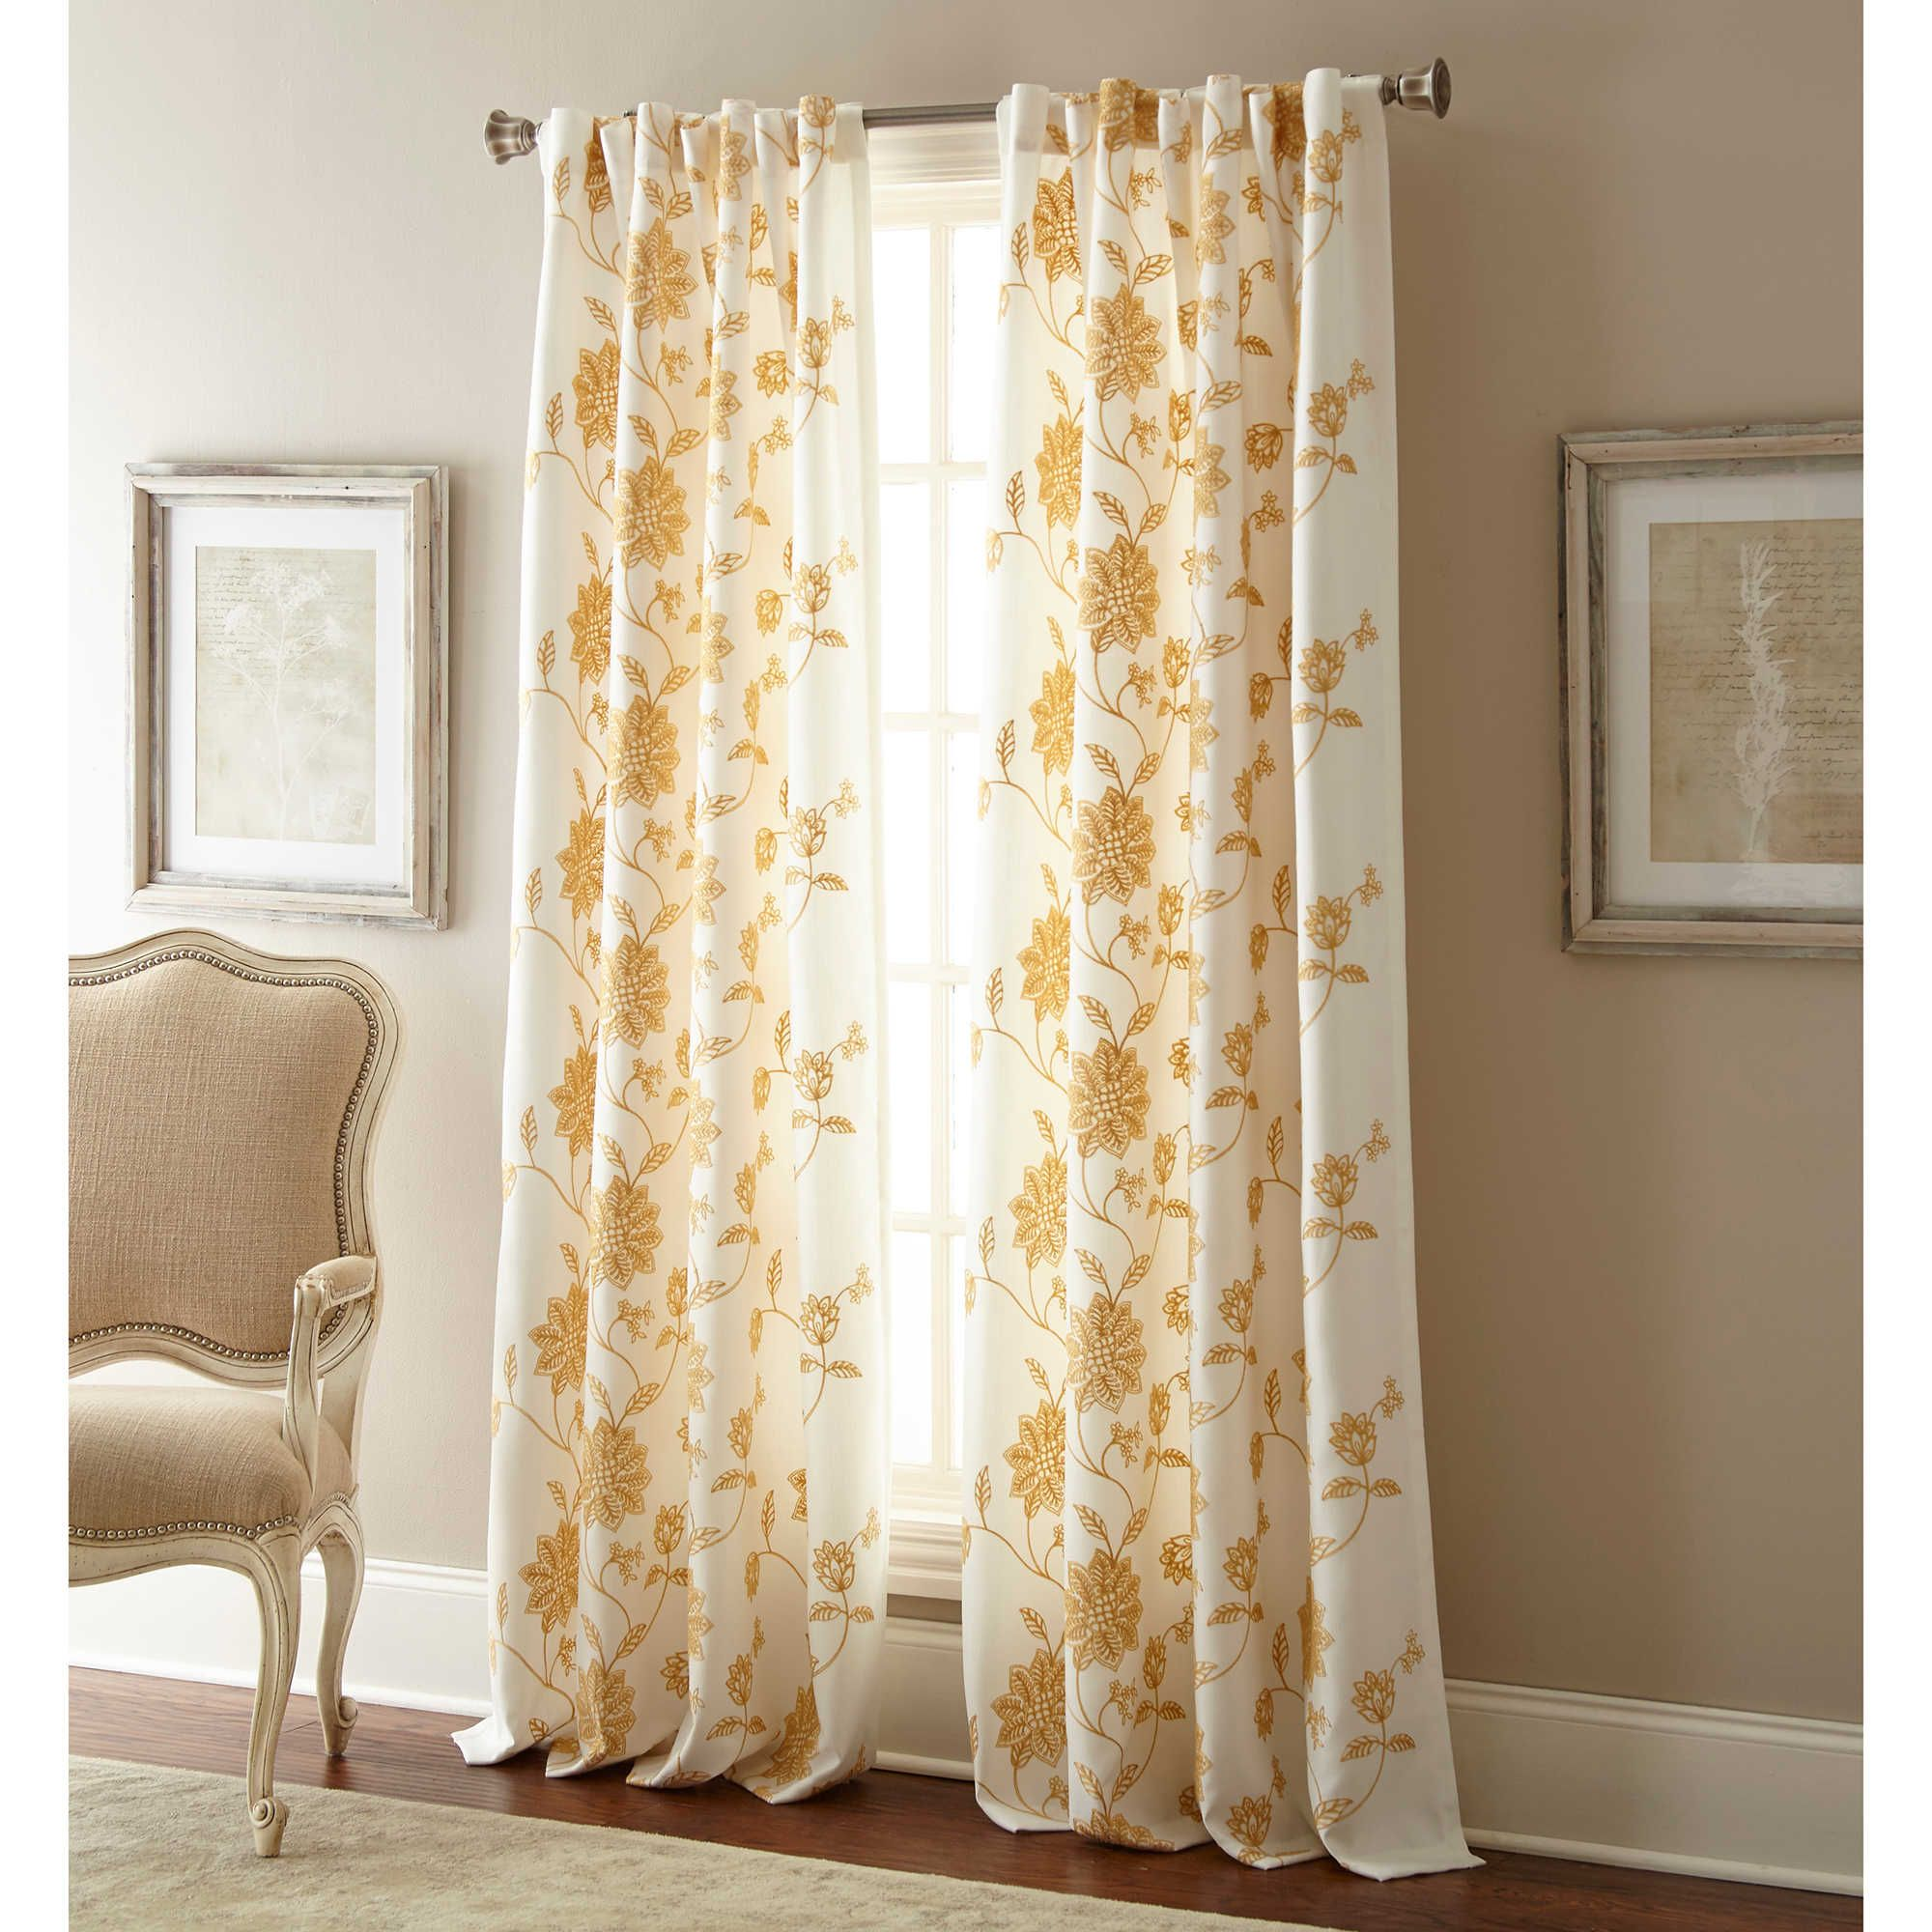 Window ideas for family room  jaylynn inch rod pocket embroidered window curtain panel in gold